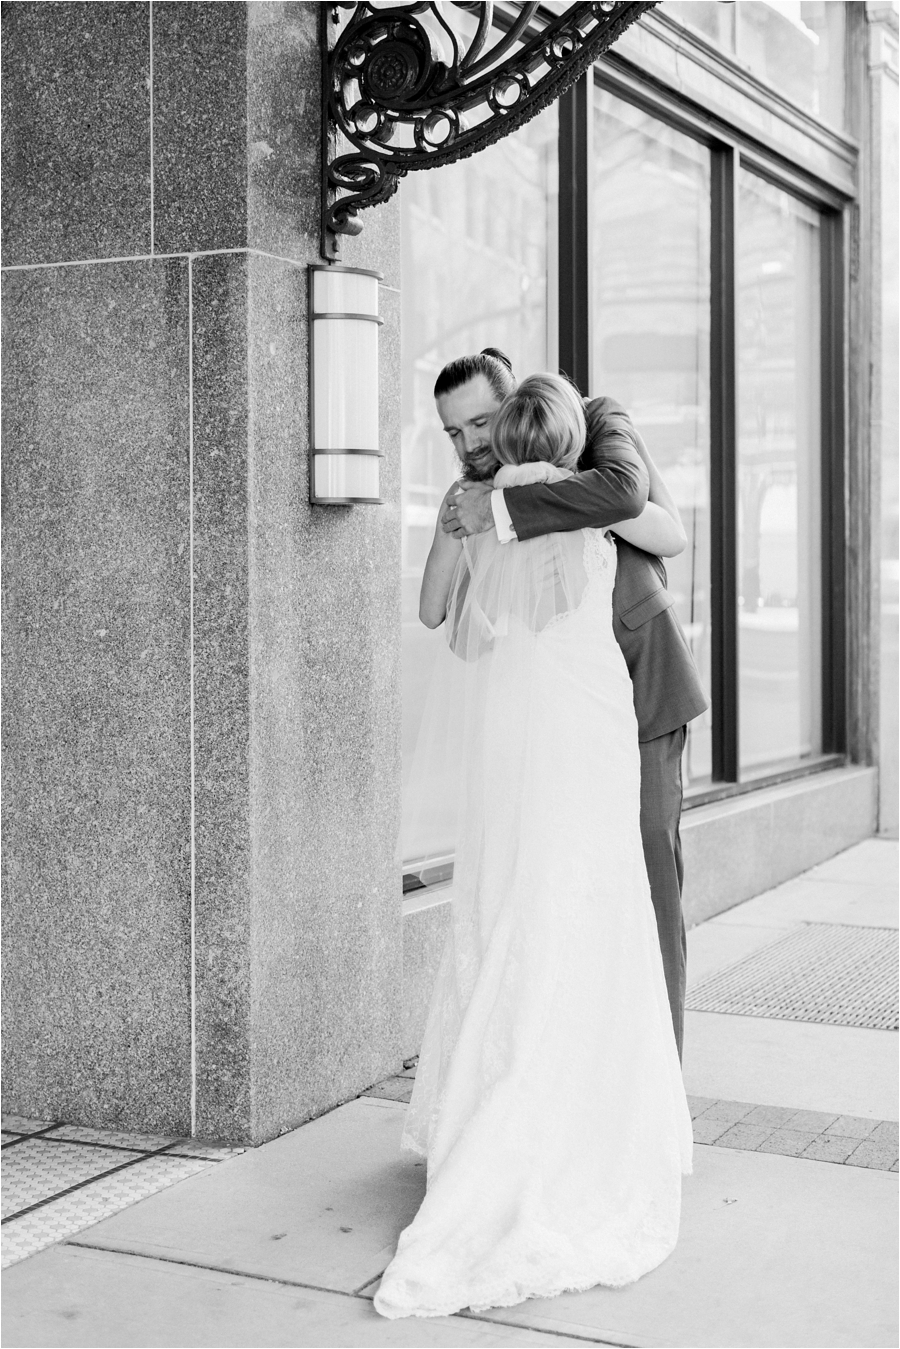 richmond winter wedding at hotel john marshall by charlottesville wedding photographer, amy nicole photography_0045